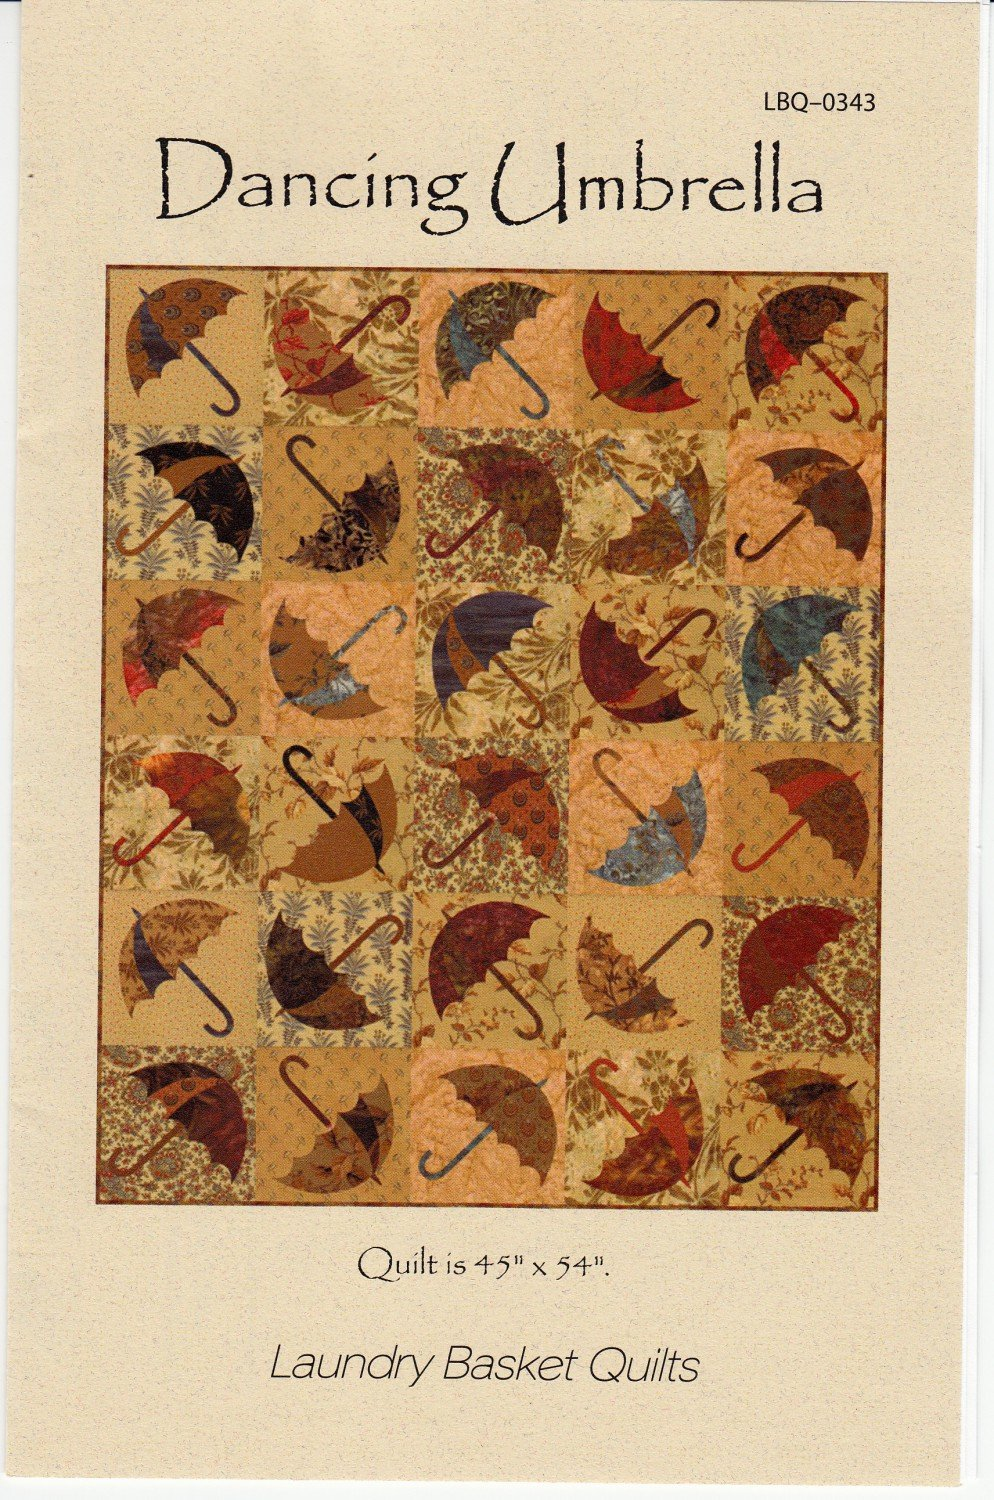 Dancing Umbrellas from Laundry Basket Quilts by Edyta Sitar